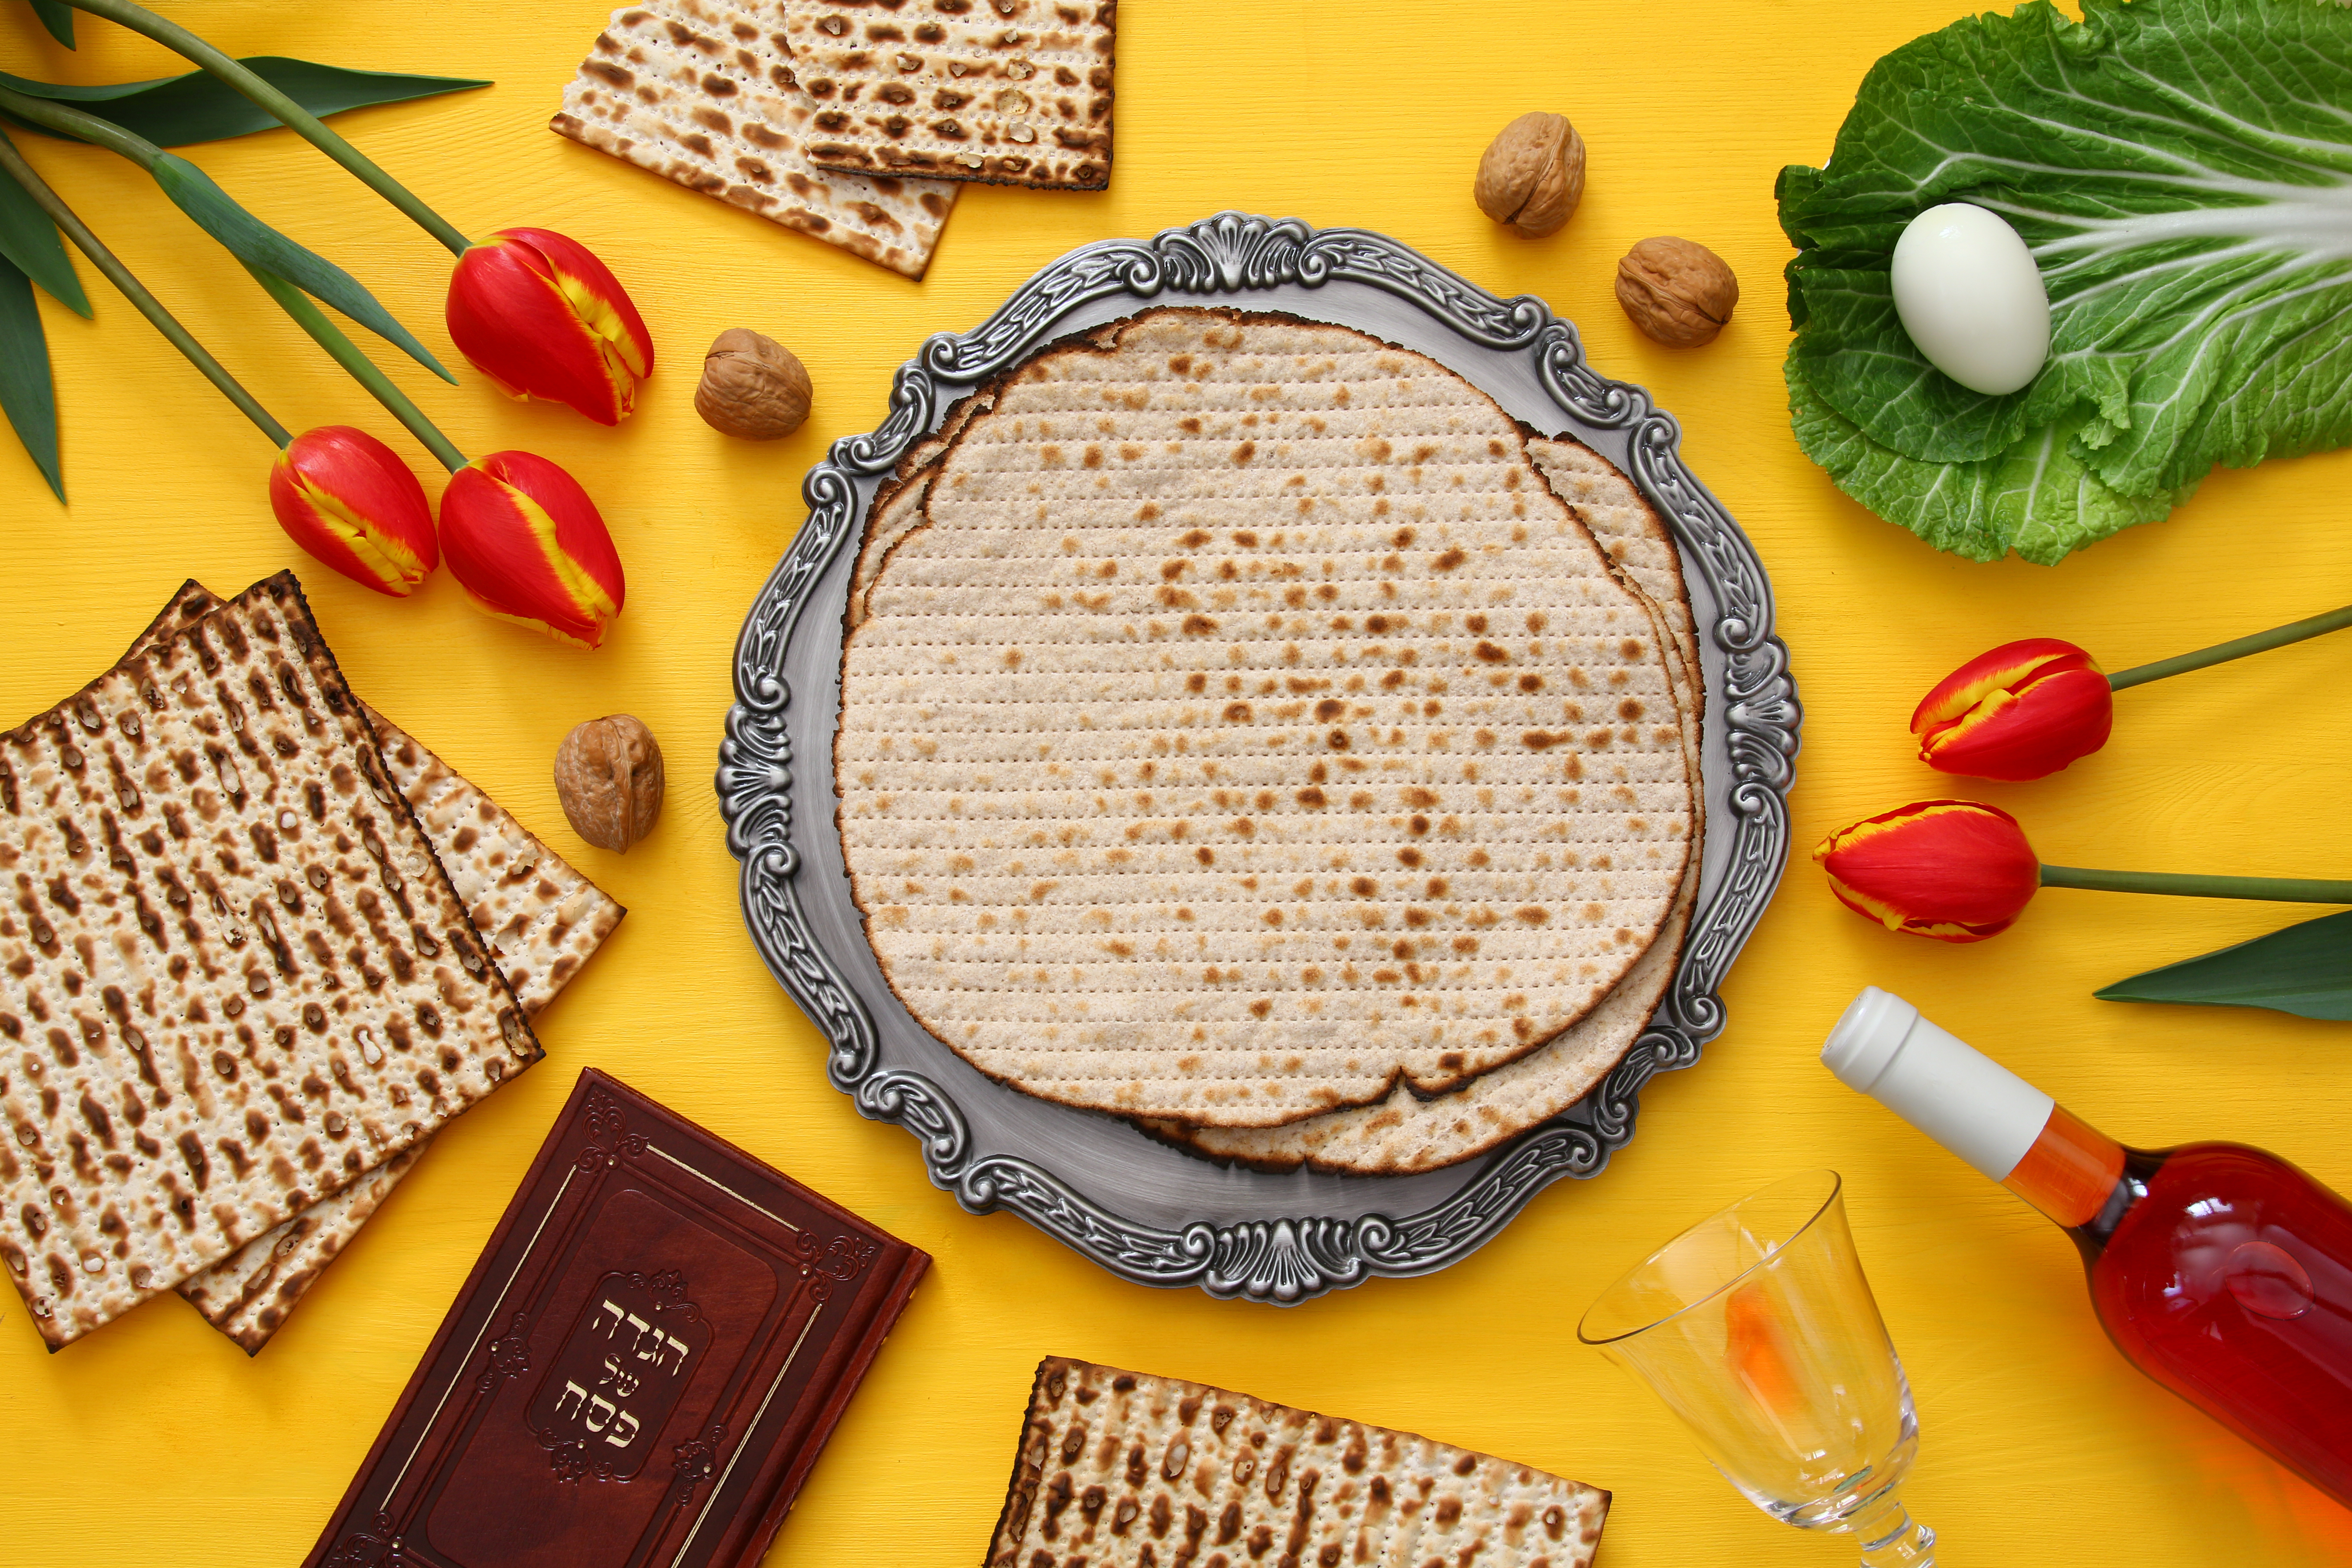 Image of various Passover foods